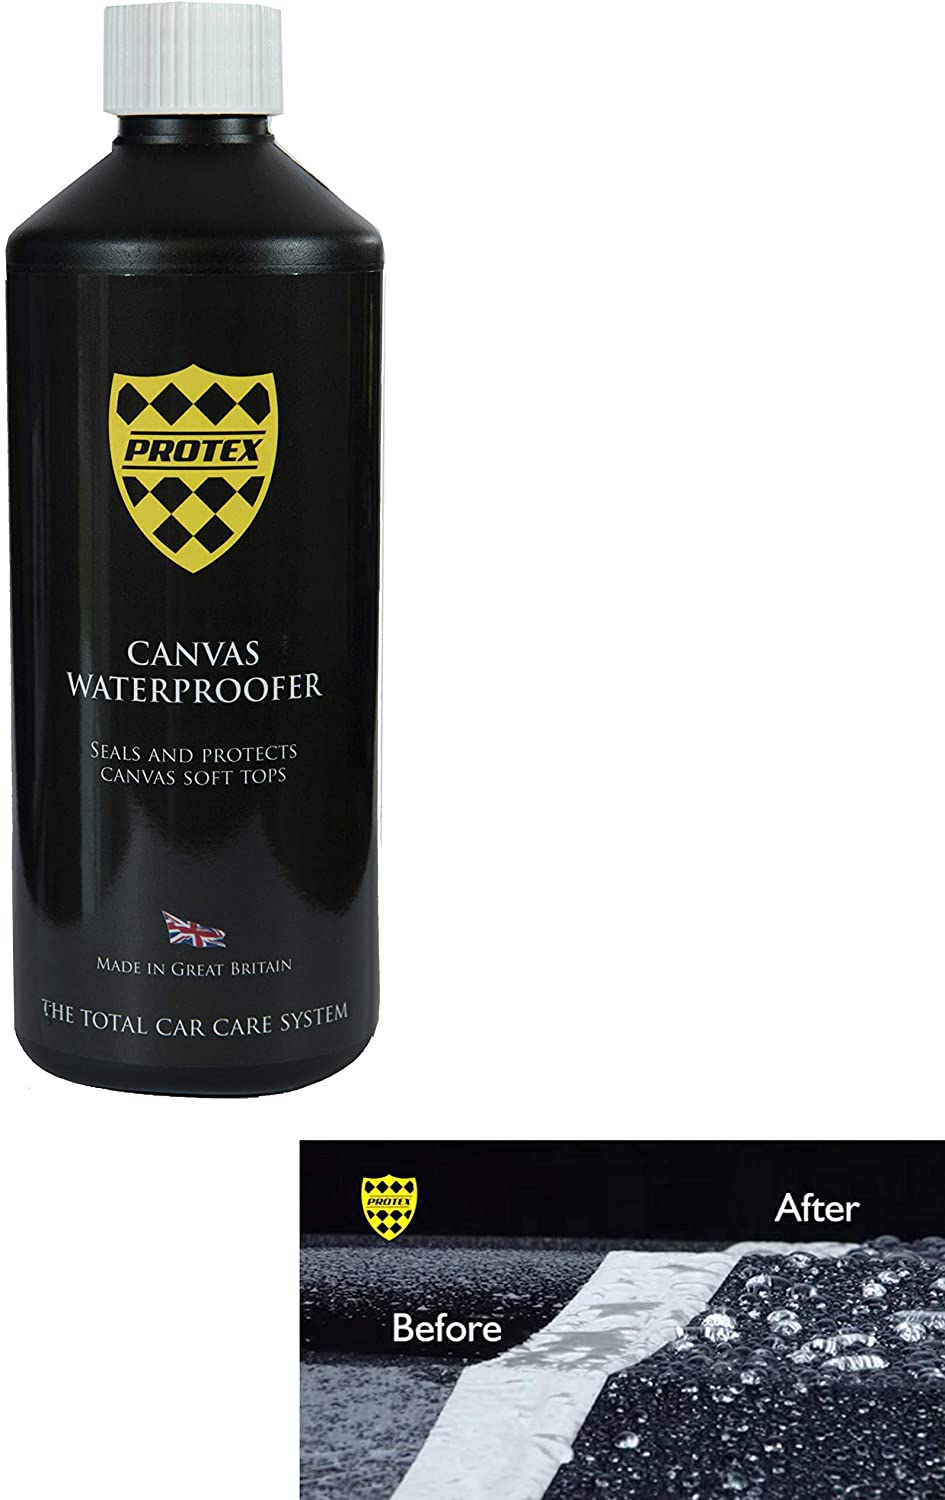 Load image into Gallery viewer, Protex World Convertible Soft Top Canvas Waterproofer Seals and Protects